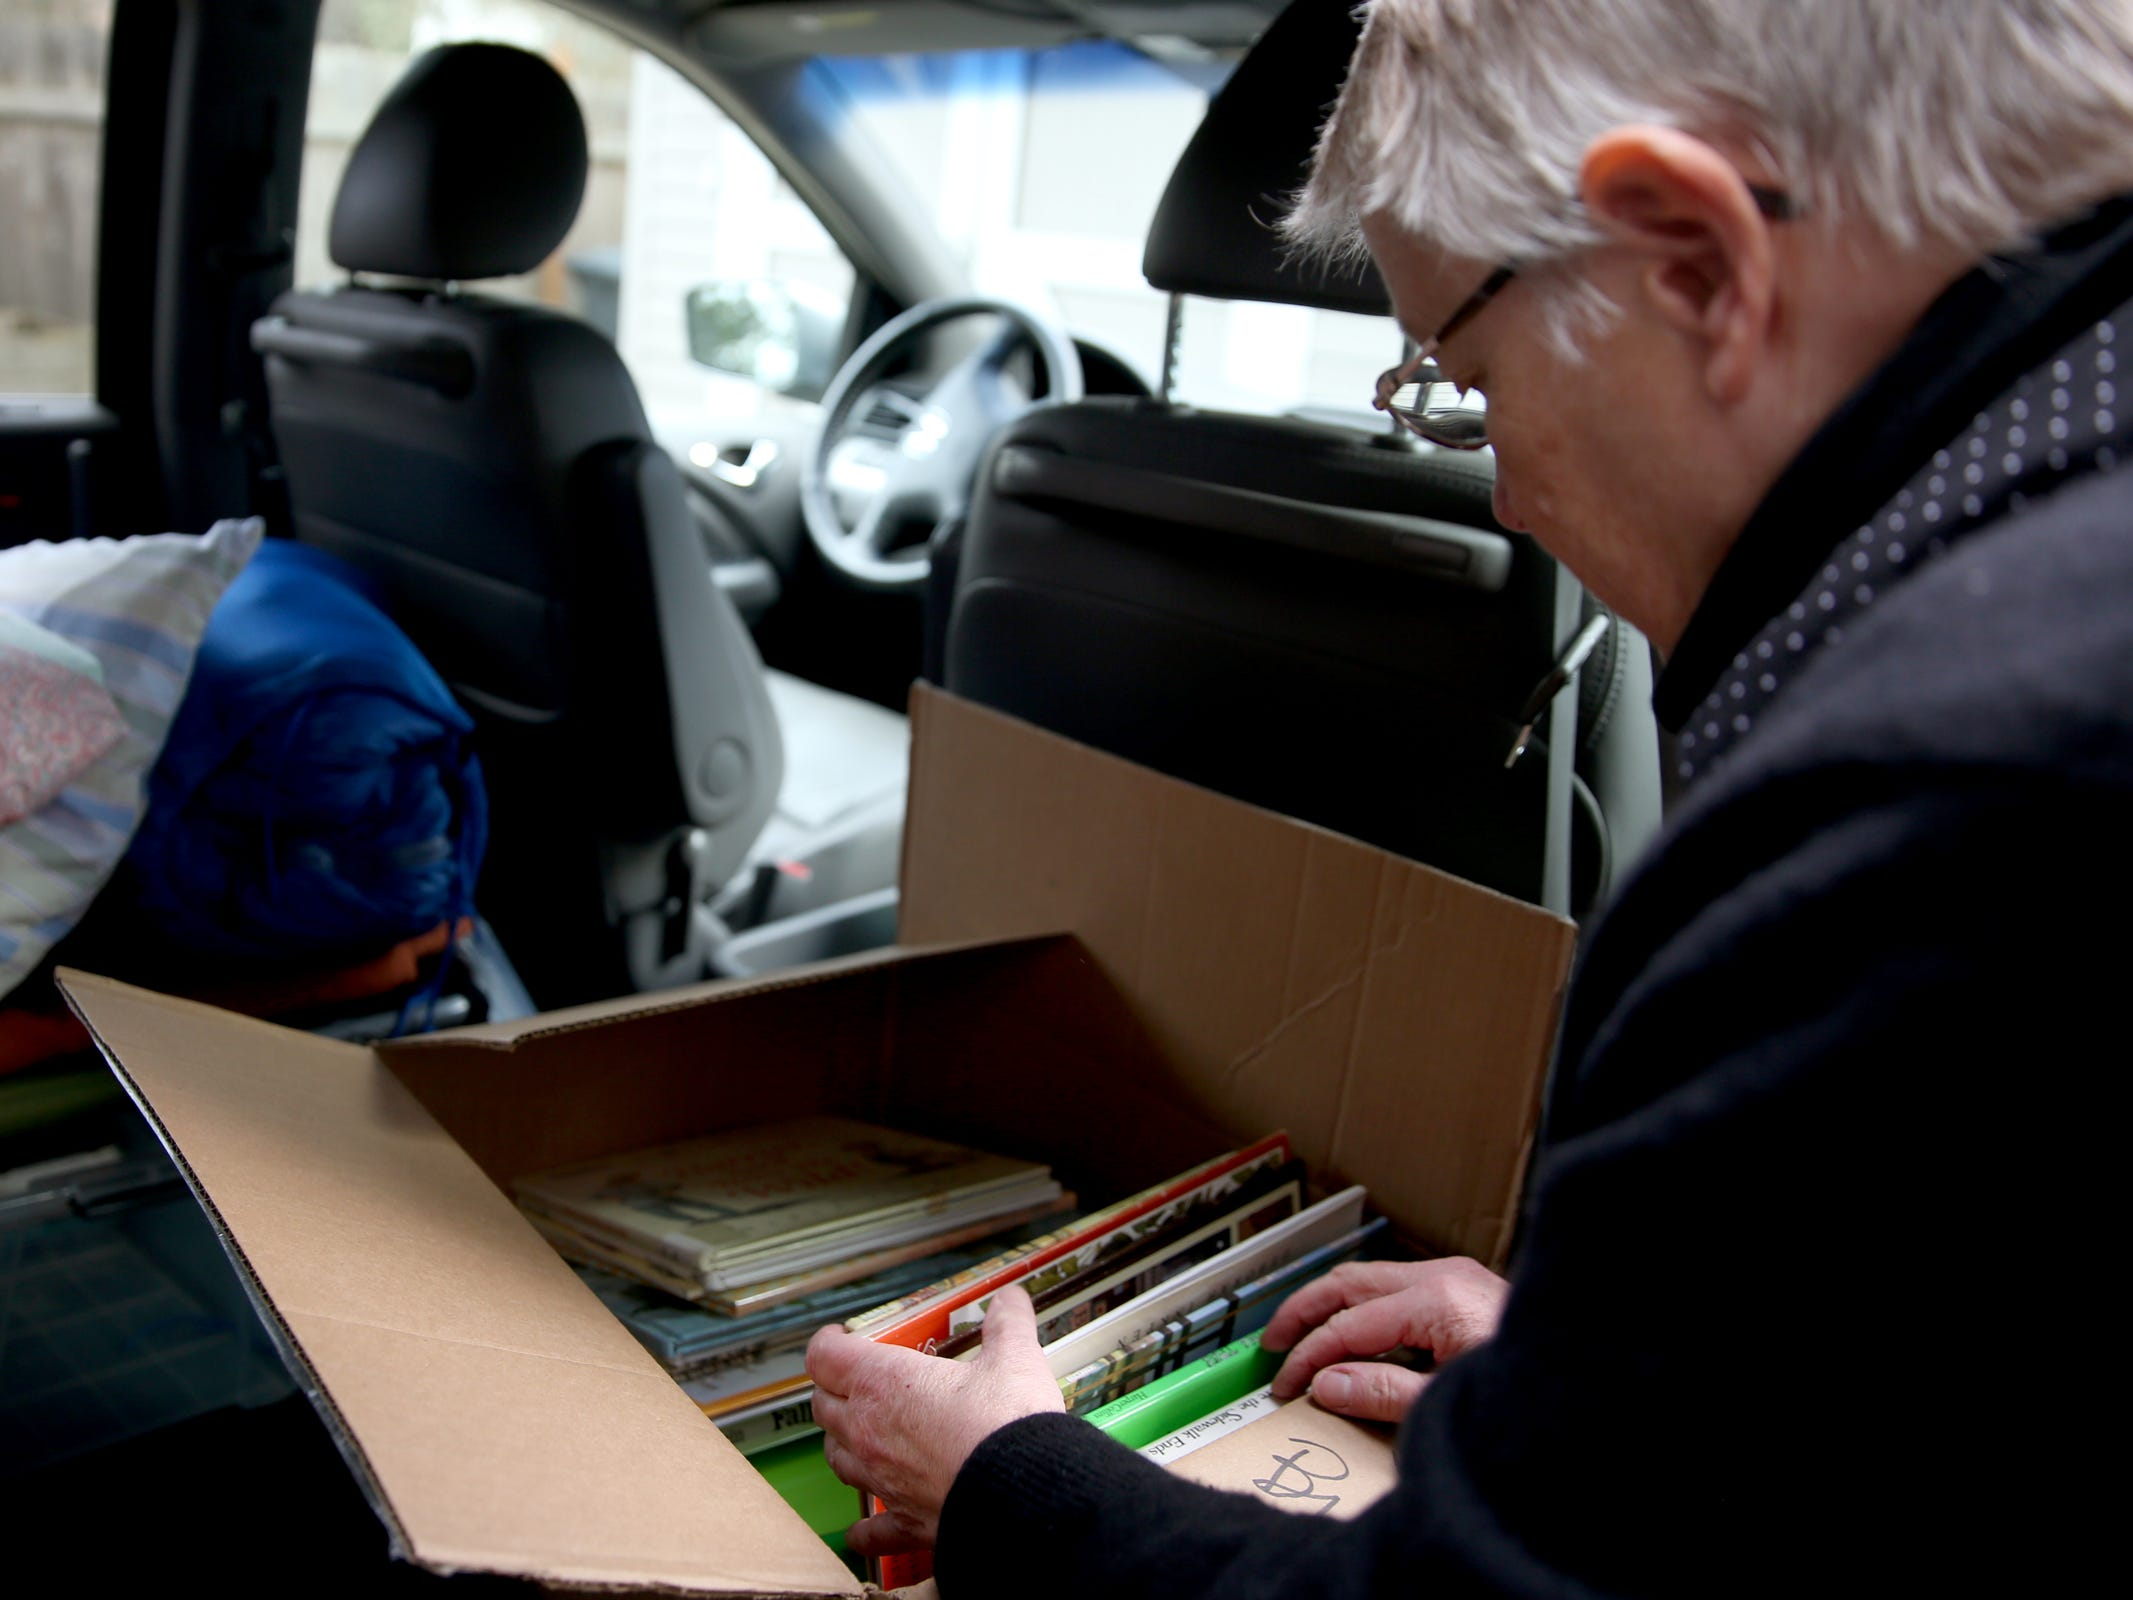 Jean Brougher will donate books to a local group when she volunteers at an animal shelter near Paradise, California following wildfires. Photographed at Brougher's home in Salem on Friday, Dec. 14, 2018.